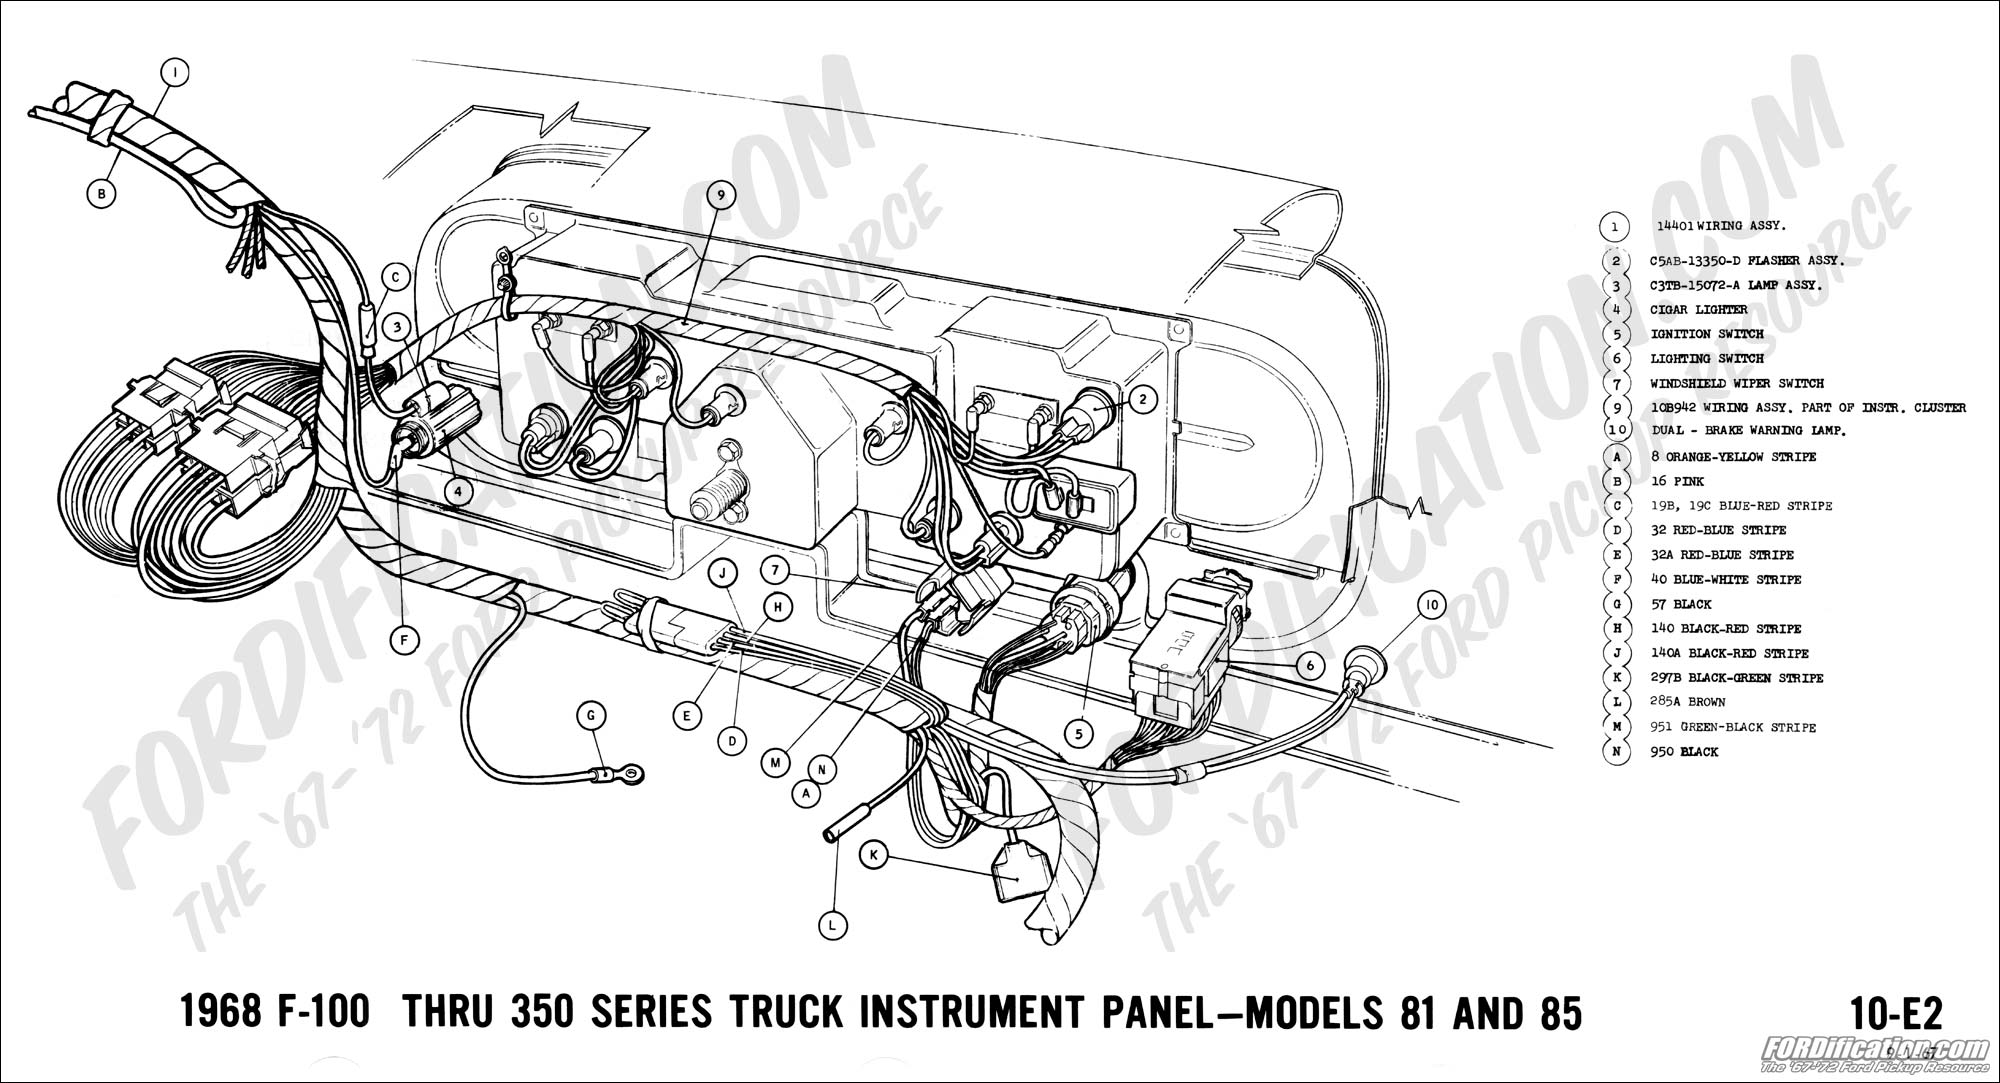 85 Ford F 350 Coil Wiring Library F350 Diagram 1968 100 Thru Instrument Panel